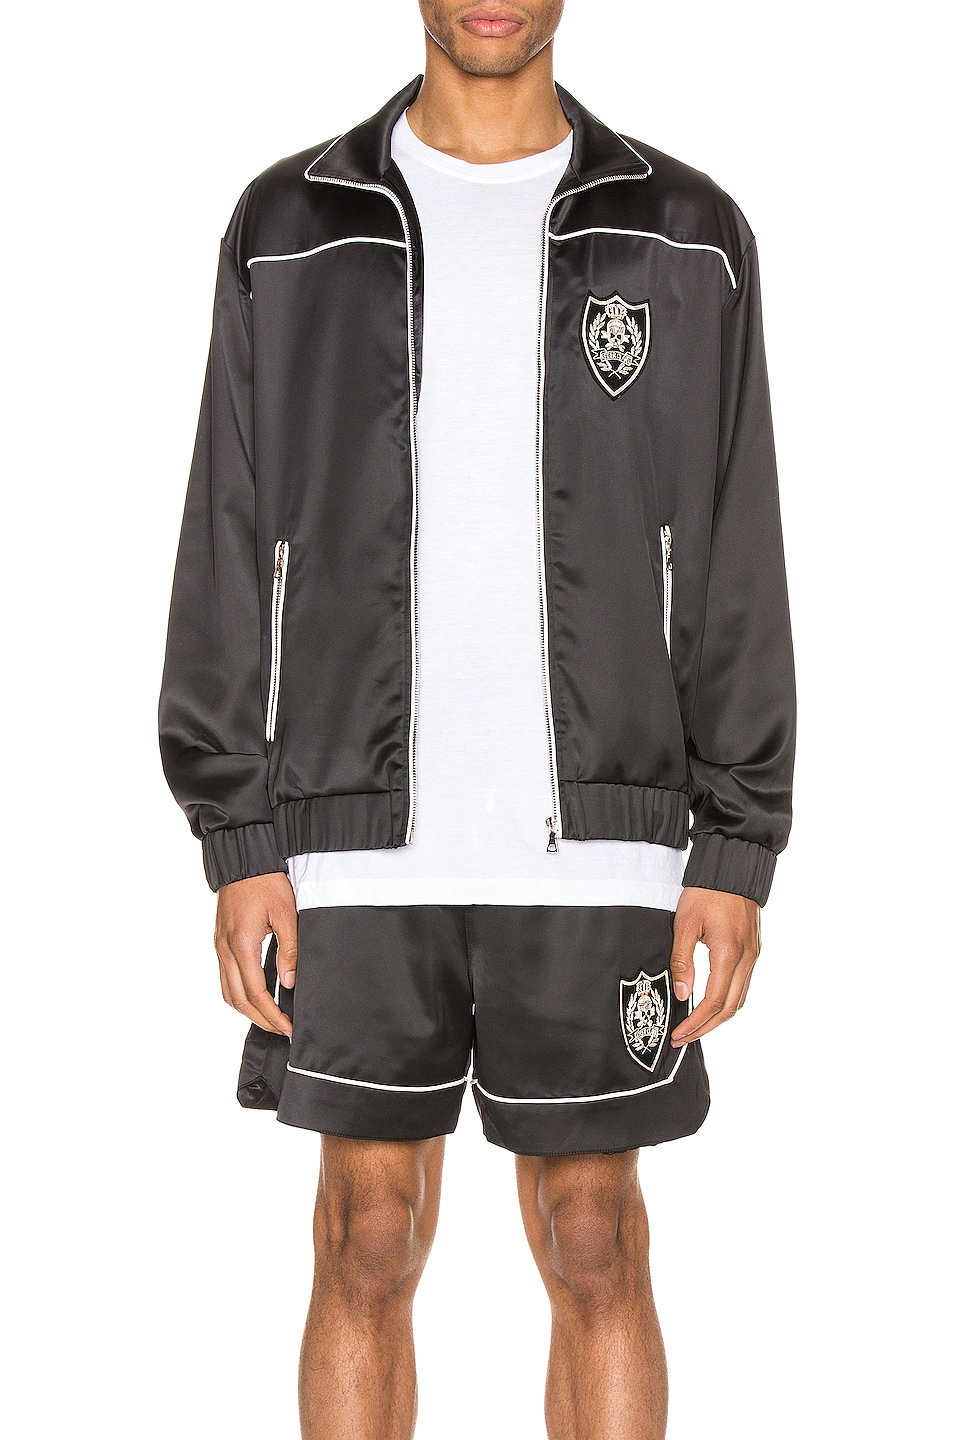 Image 1 of Keiser Clark The Academy Tracksuit Jacket in Black & White